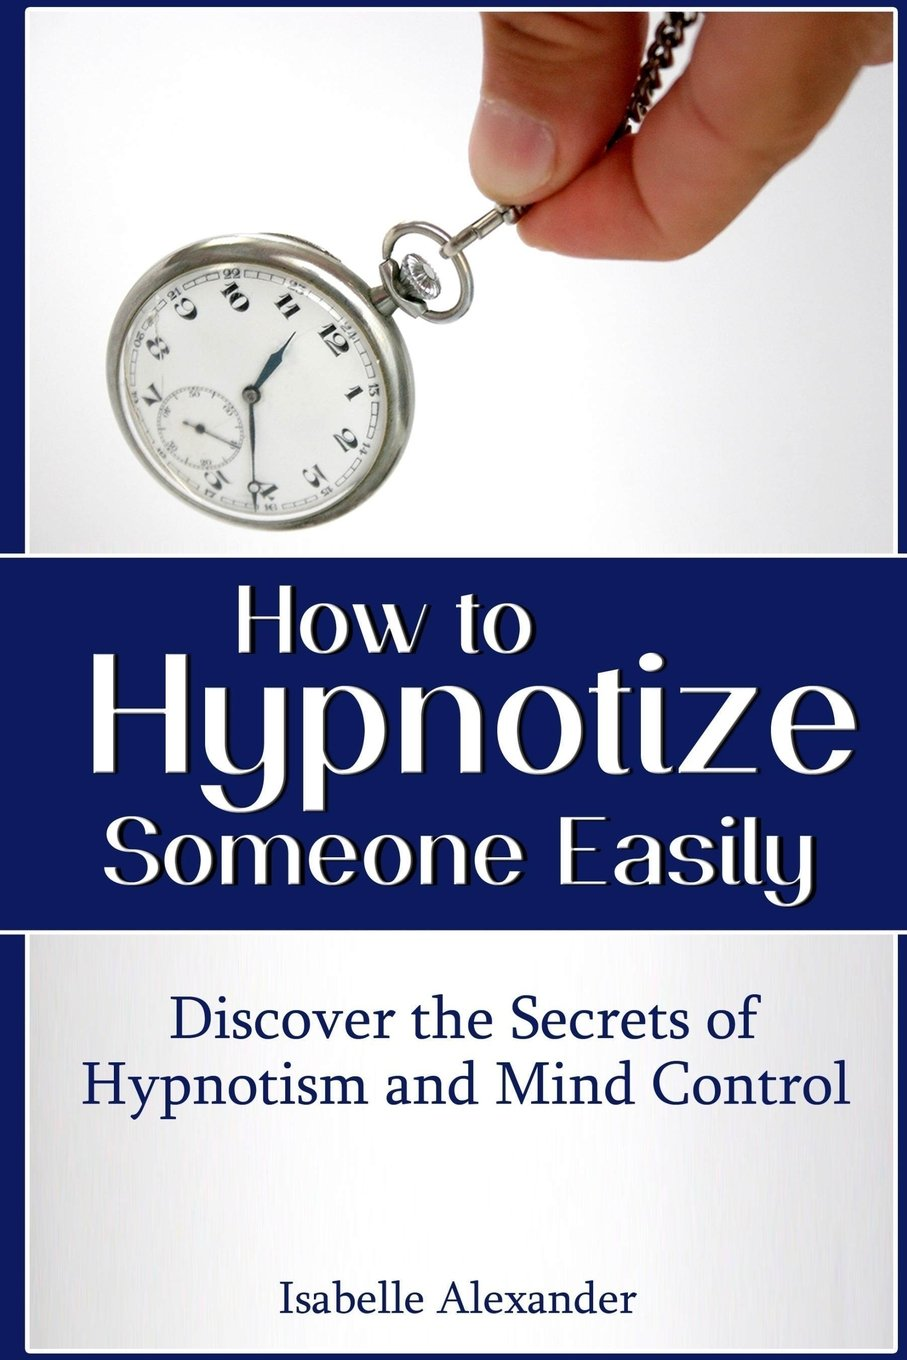 How to Hypnotize Someone Easily: Discover the Secrets of